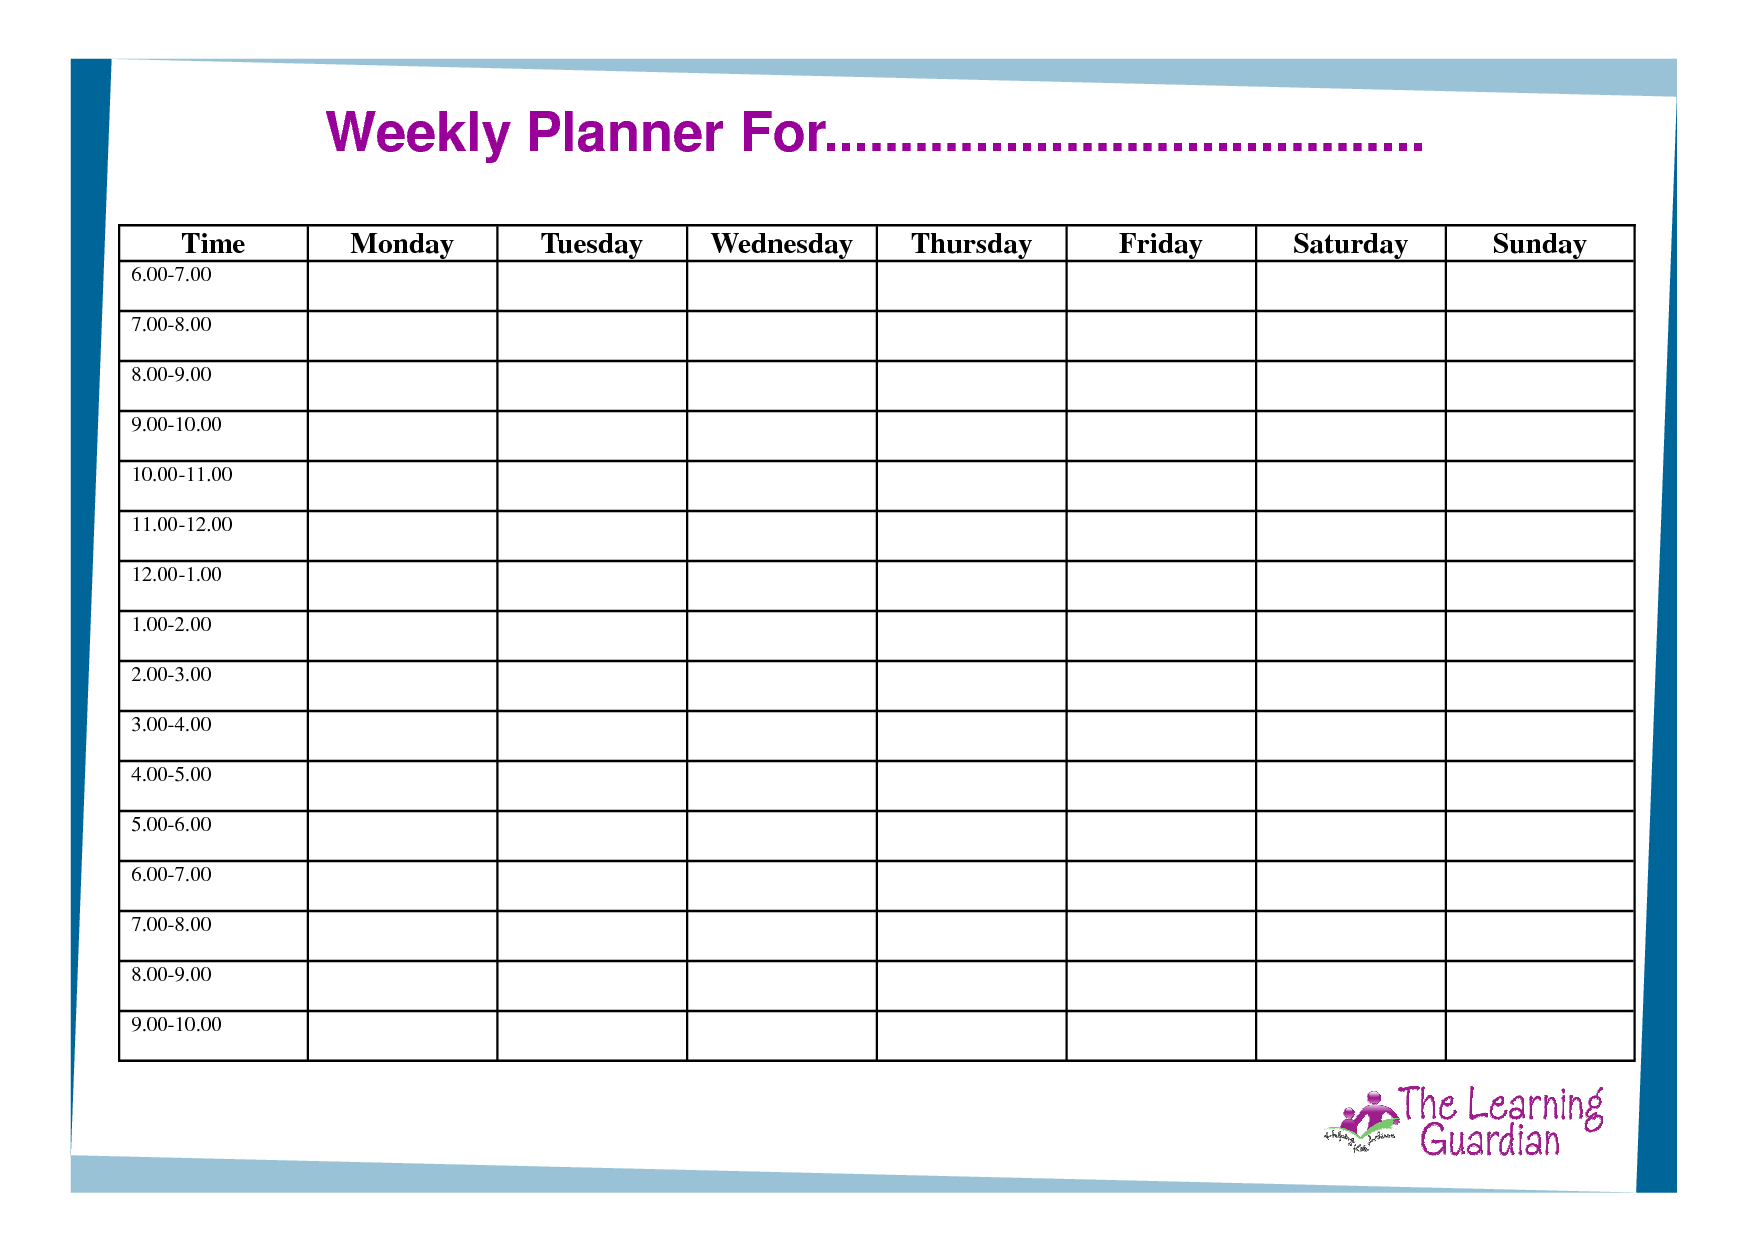 Free Printable Weekly Calendar Templates | Weekly Planner For Time with regard to Monday Through Friday Planner Template